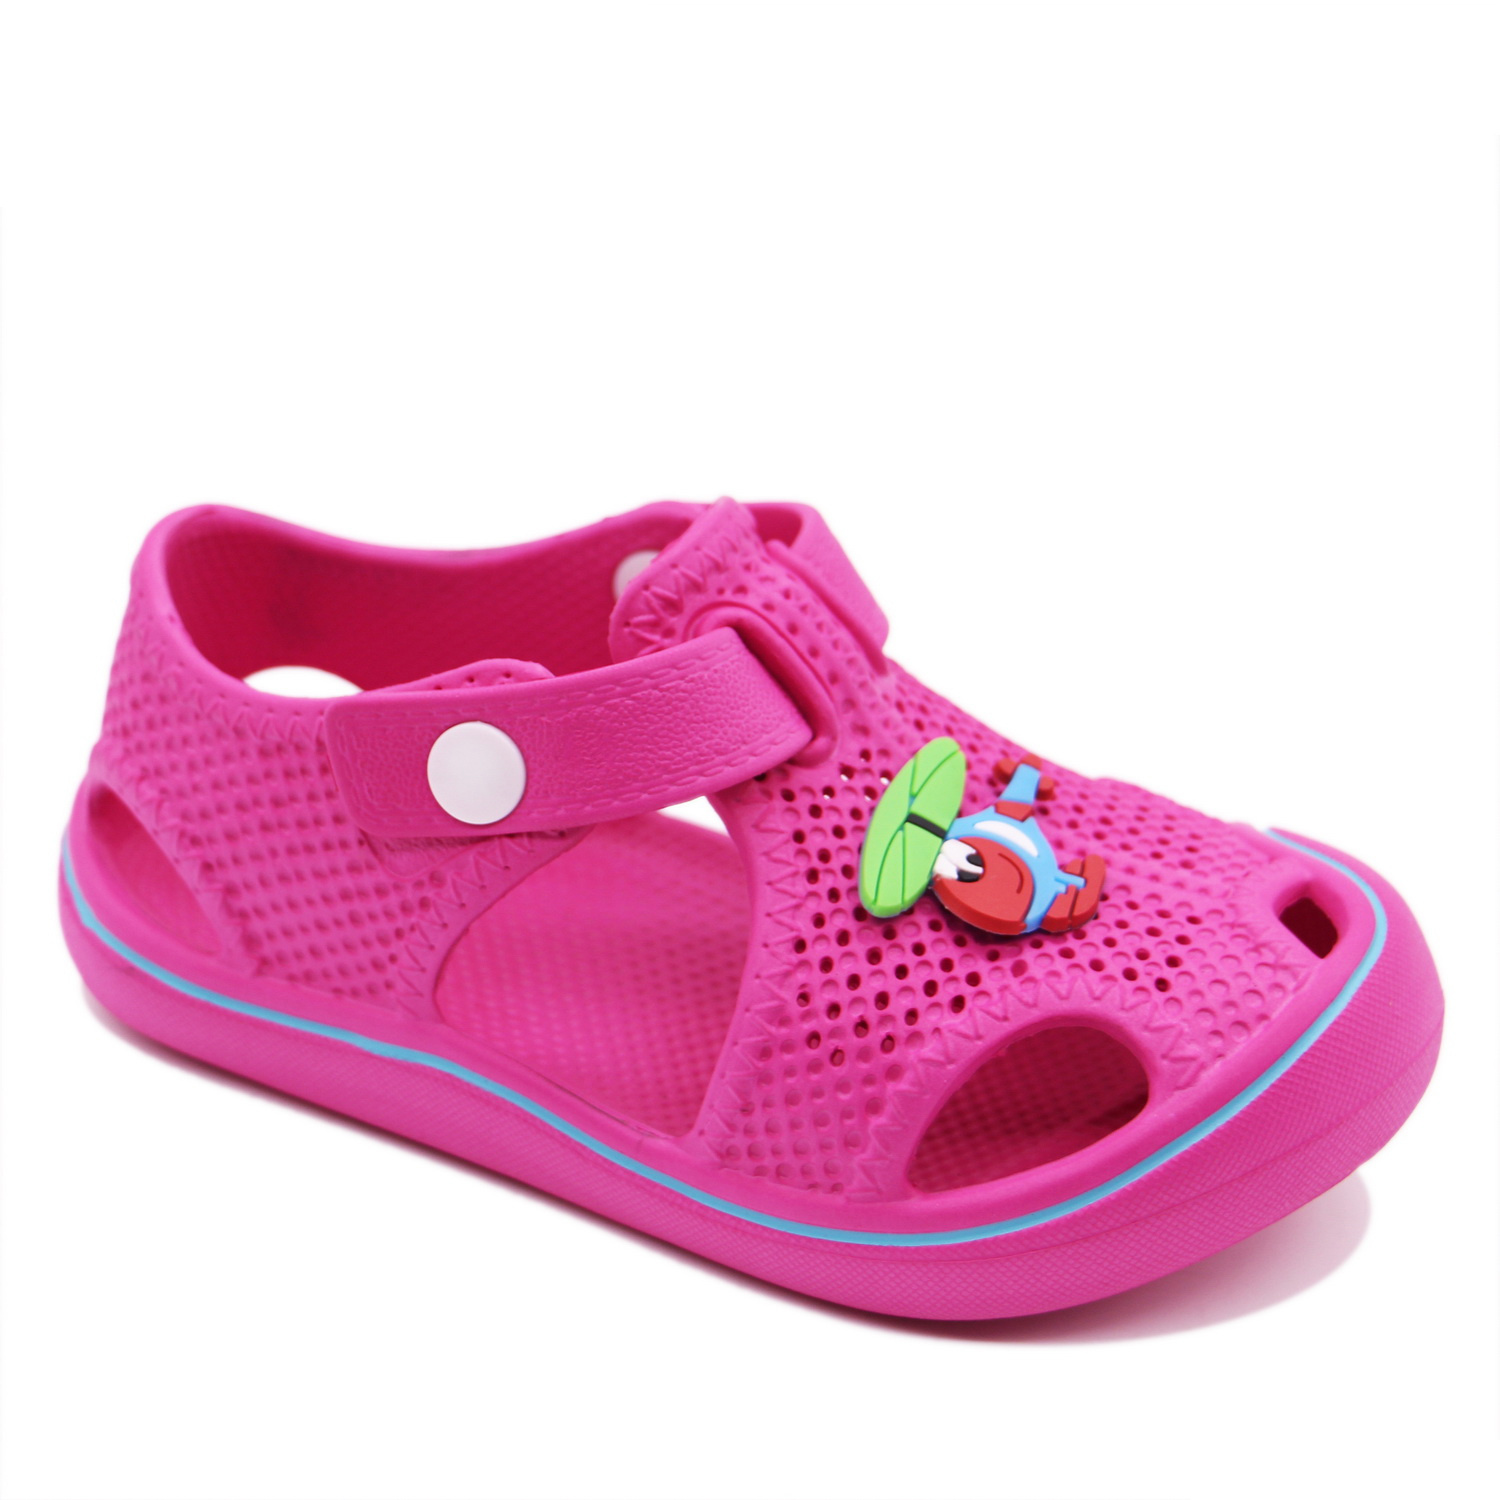 70e7997d9 China Girl Sandals, Girl Sandals Manufacturers, Suppliers, Price   Made-in- China.com